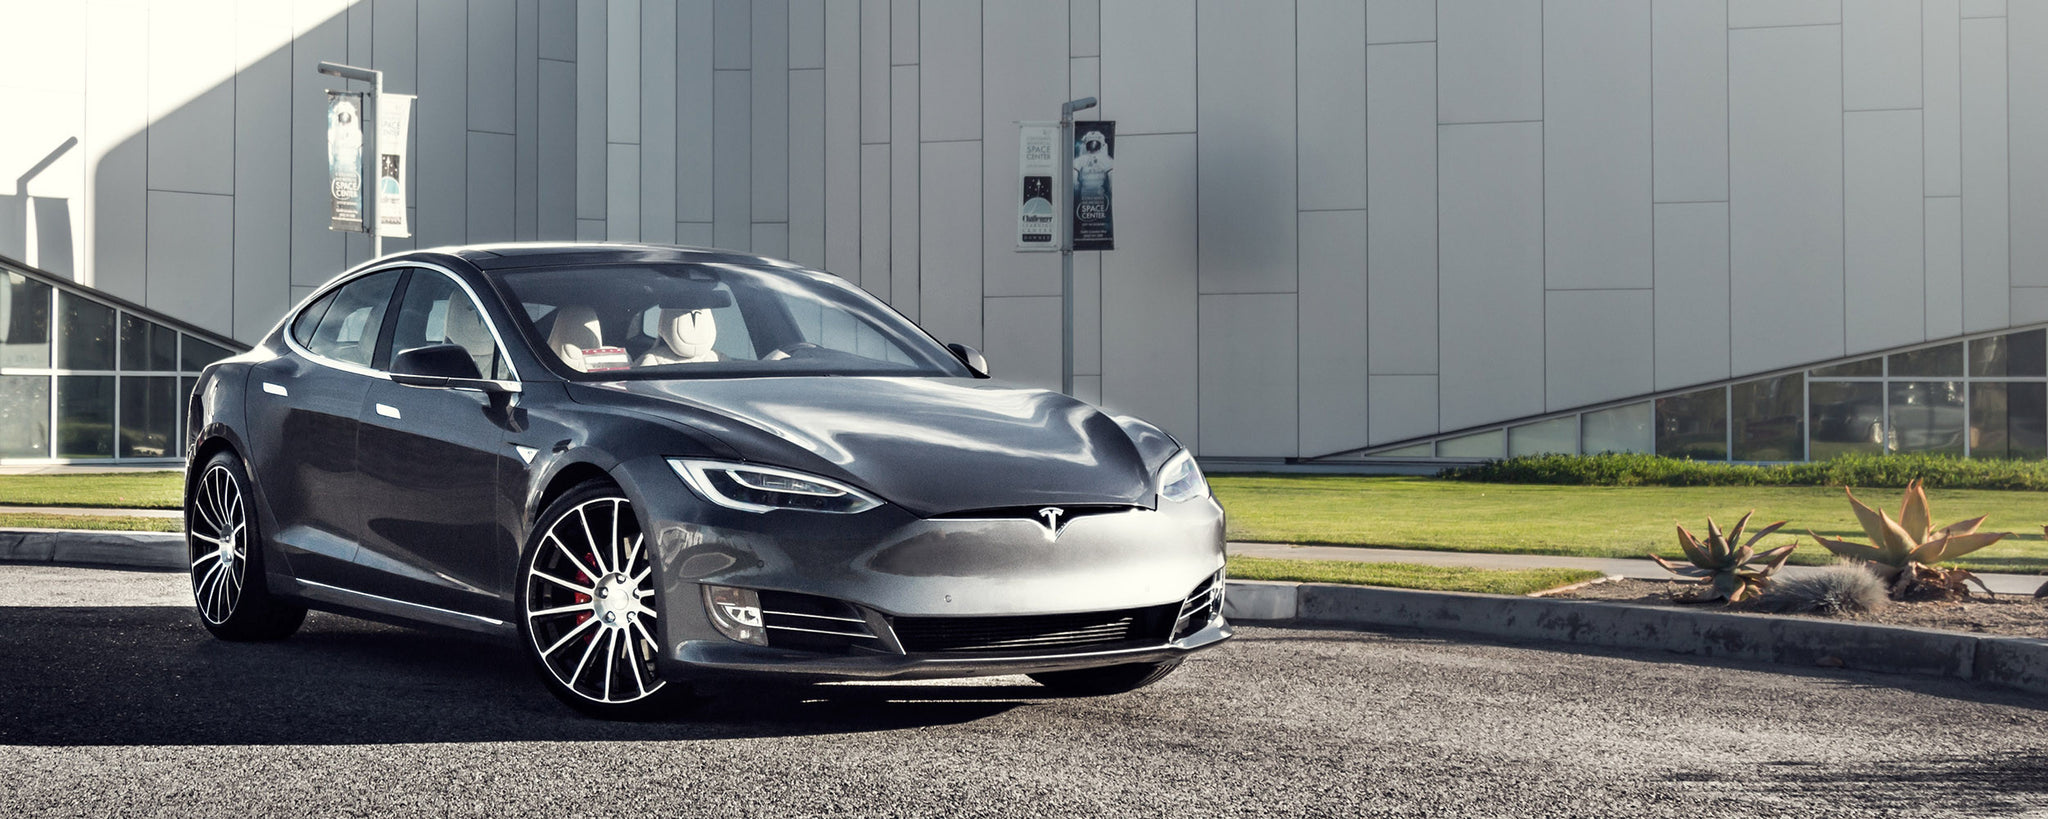 Glamorous Tesla Model S Aftermarket Accessories | Road ...